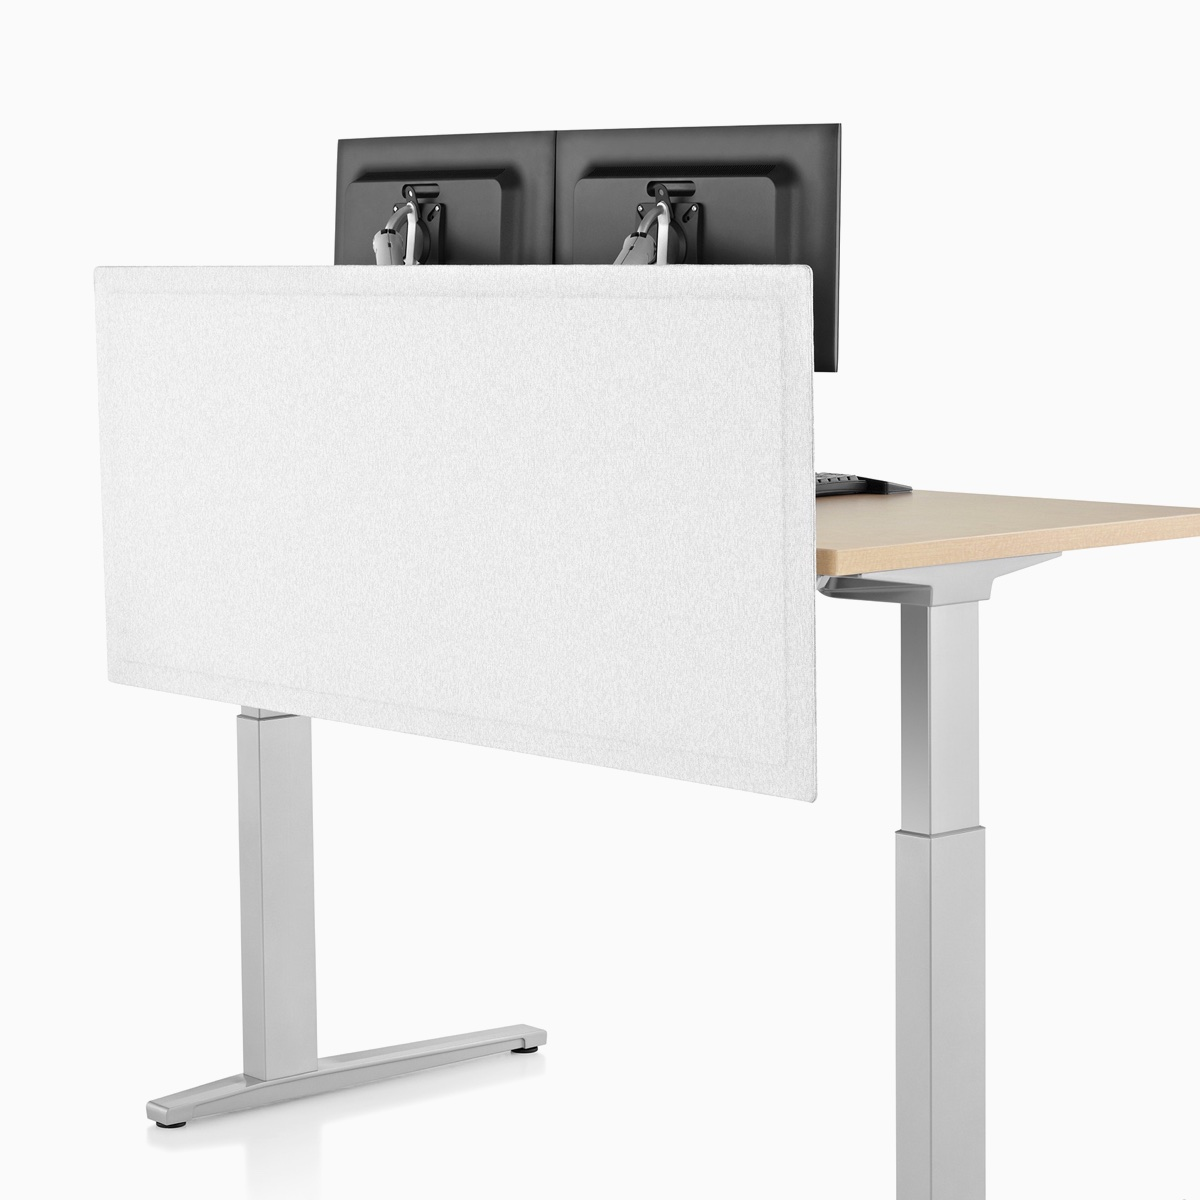 Viewed at an angle, the front side of a light gray, tapered-edge fabric, surface-attached screen on a rectangular Renew Sit-to-Stand Table.